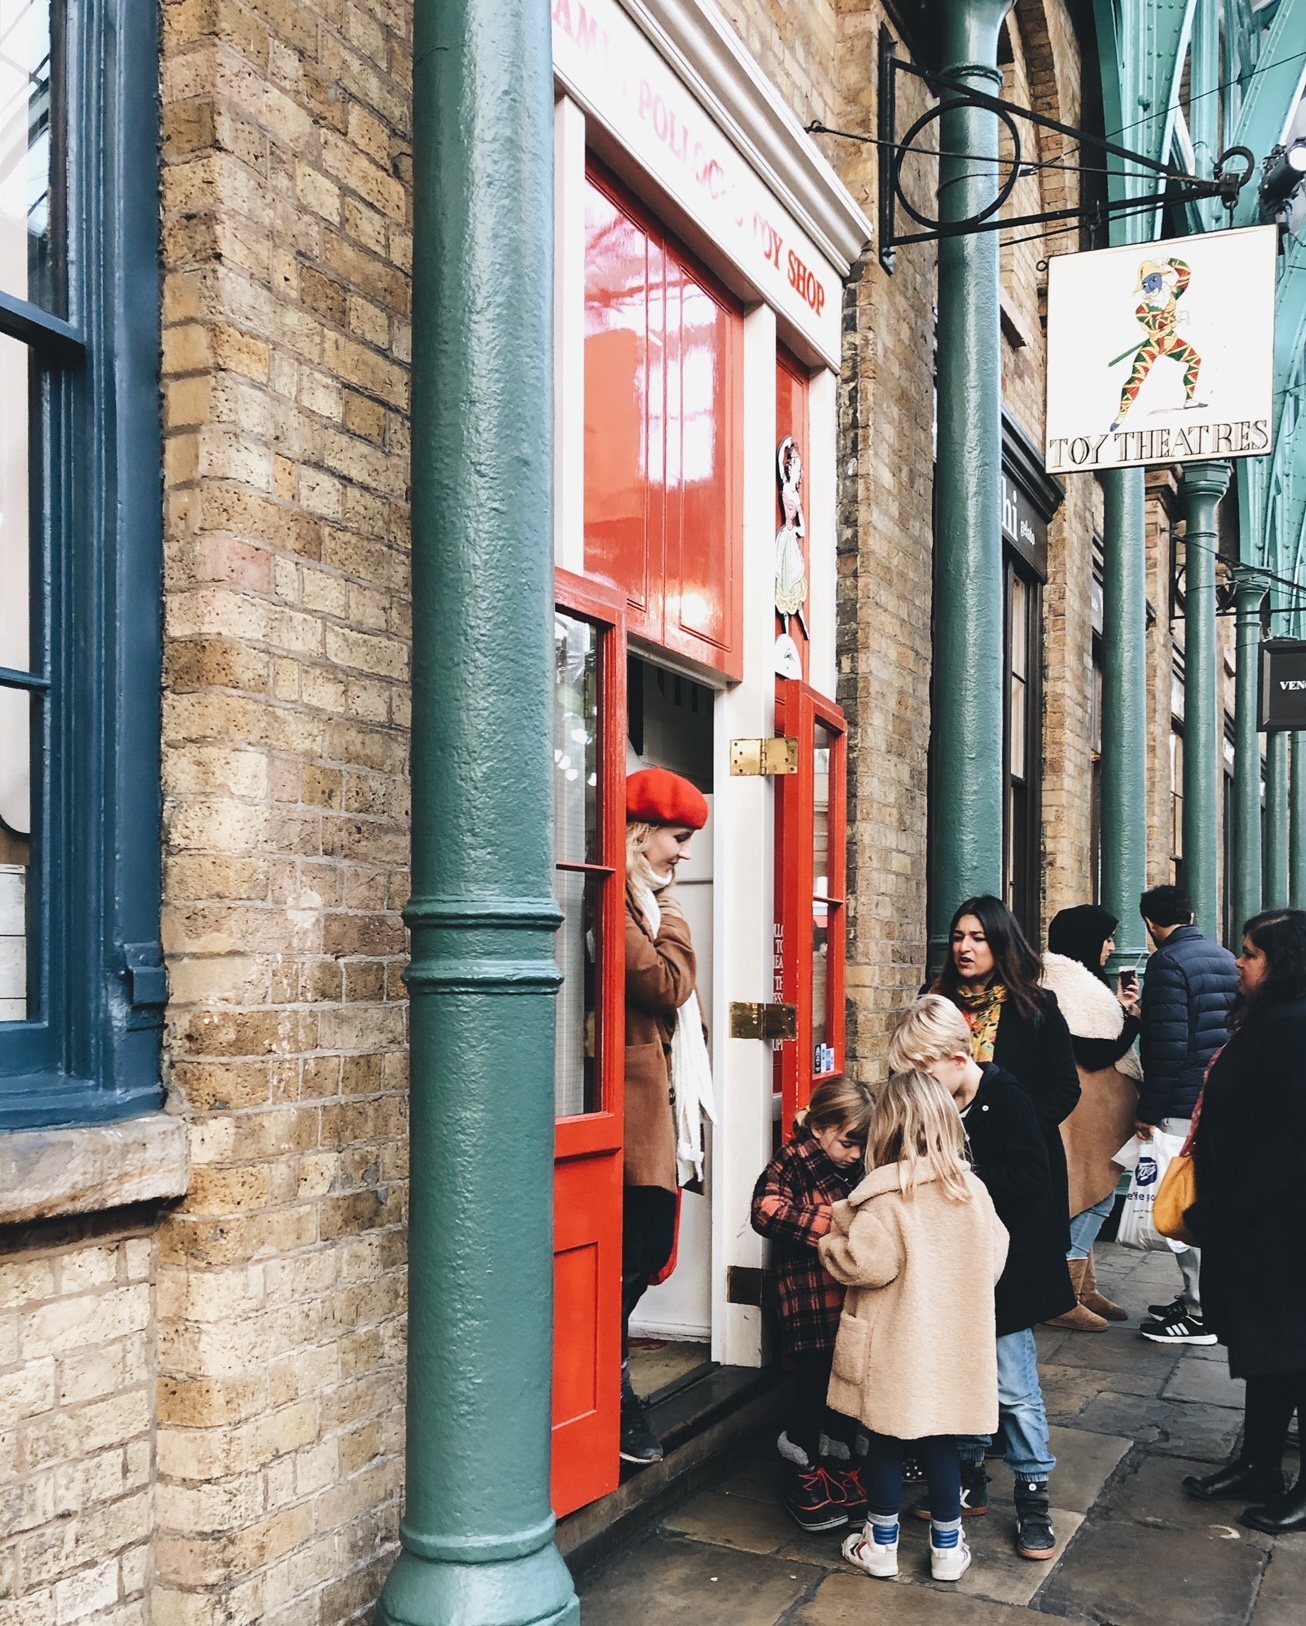 Our favourite toy shop, Benjamin Pollock's in Covent Garden